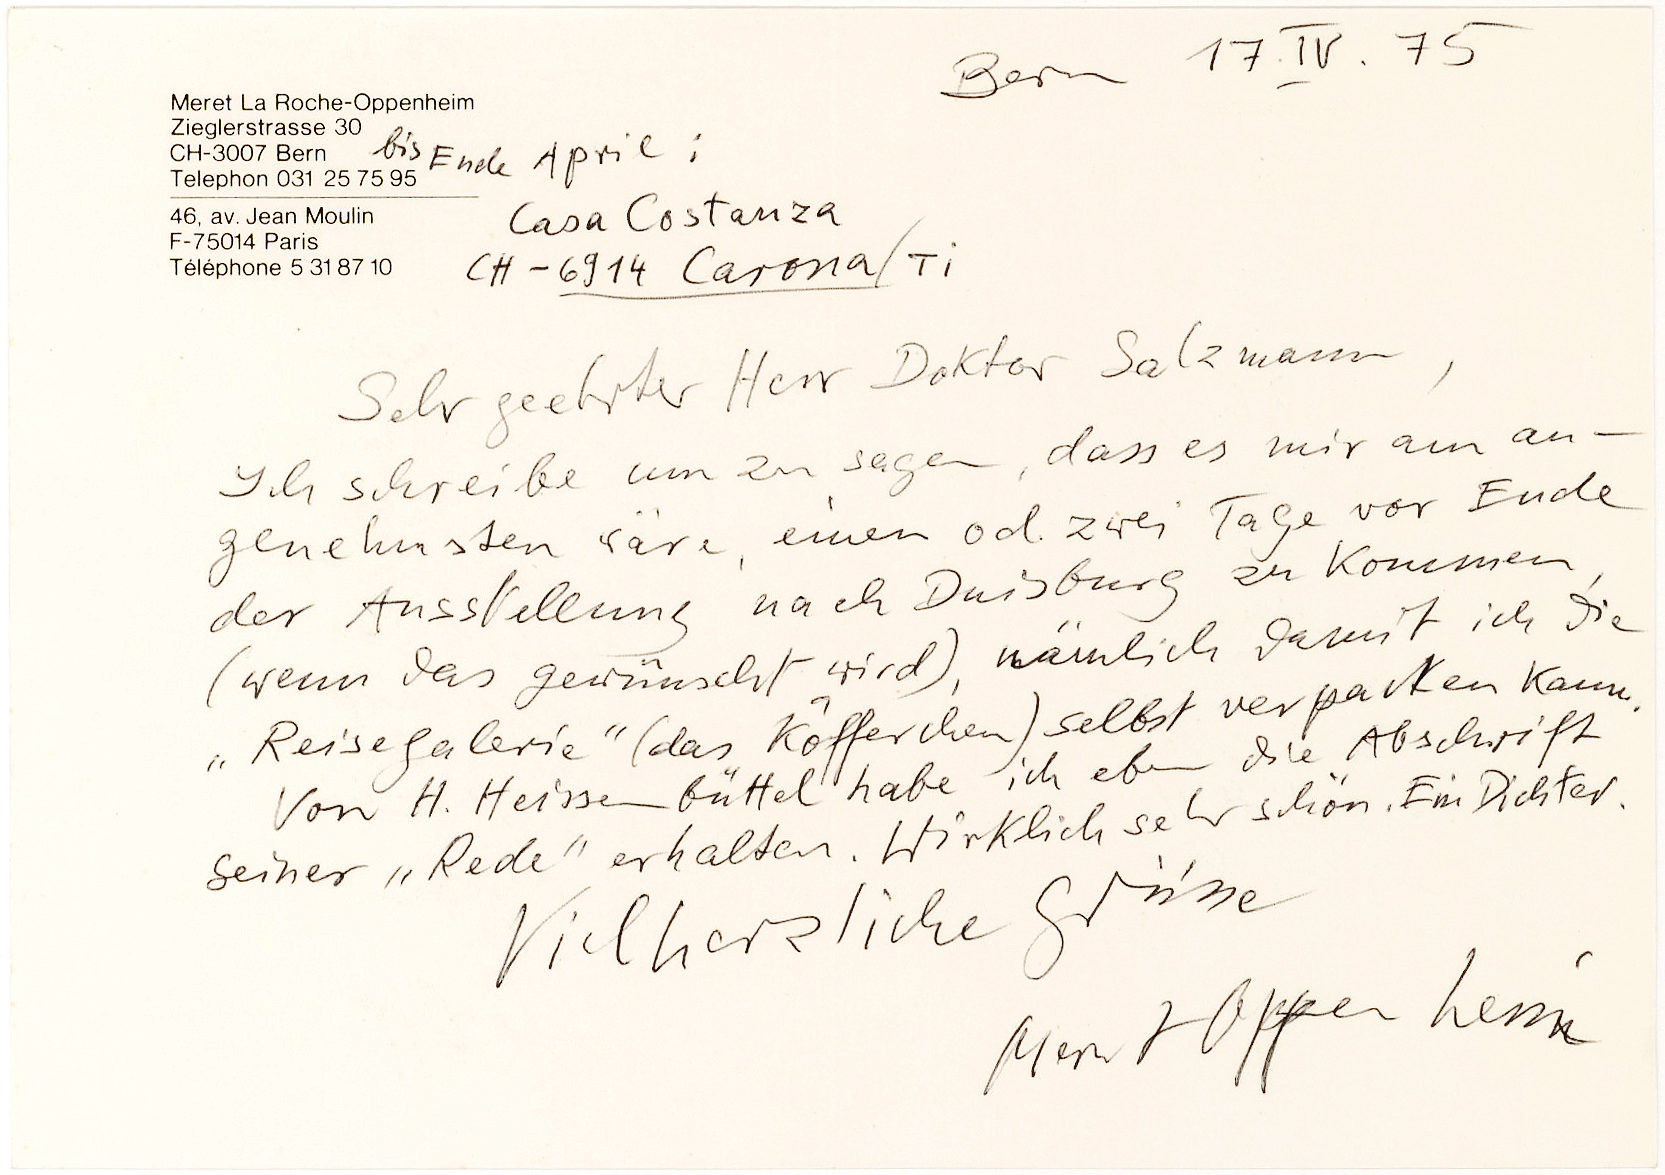 ALS Written on Her Personal Stationery from the Swiss-German Artist Who Was the Leading Female Surrealist